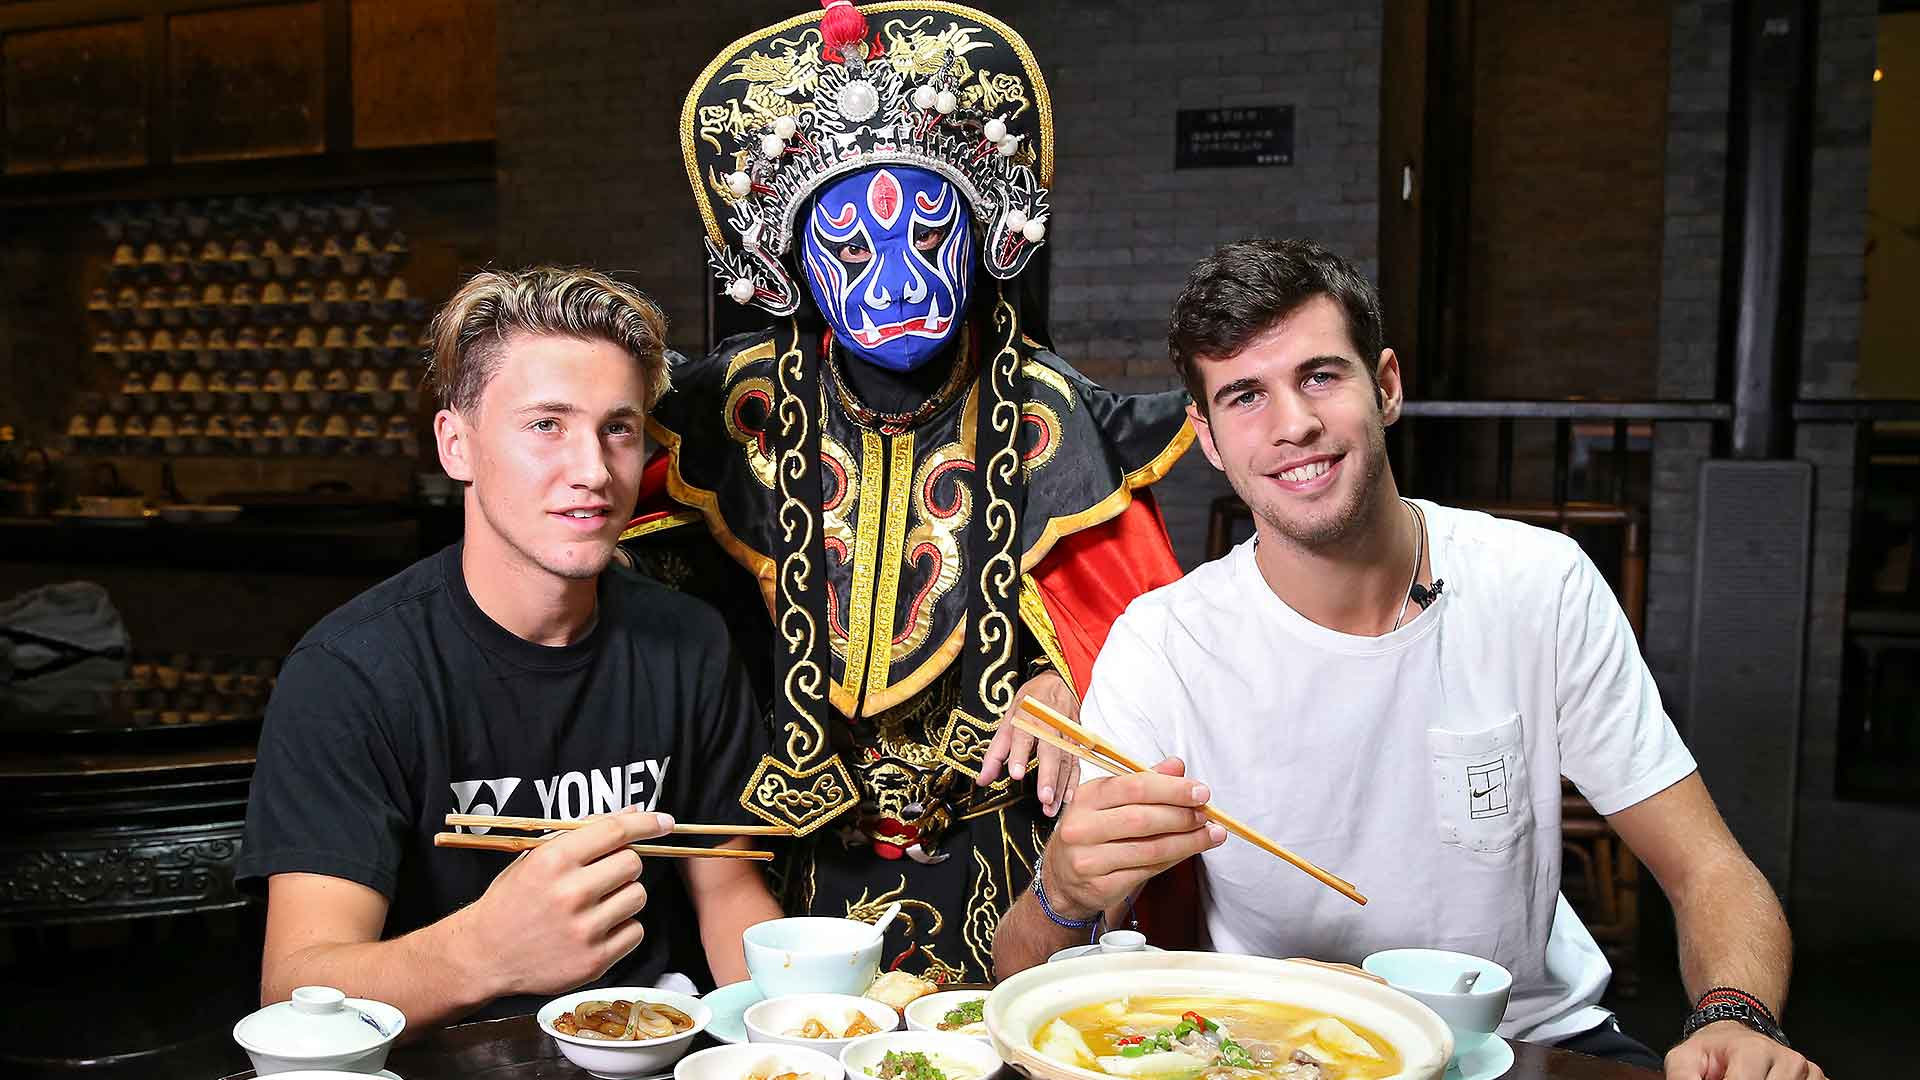 Ruud and Khachanov